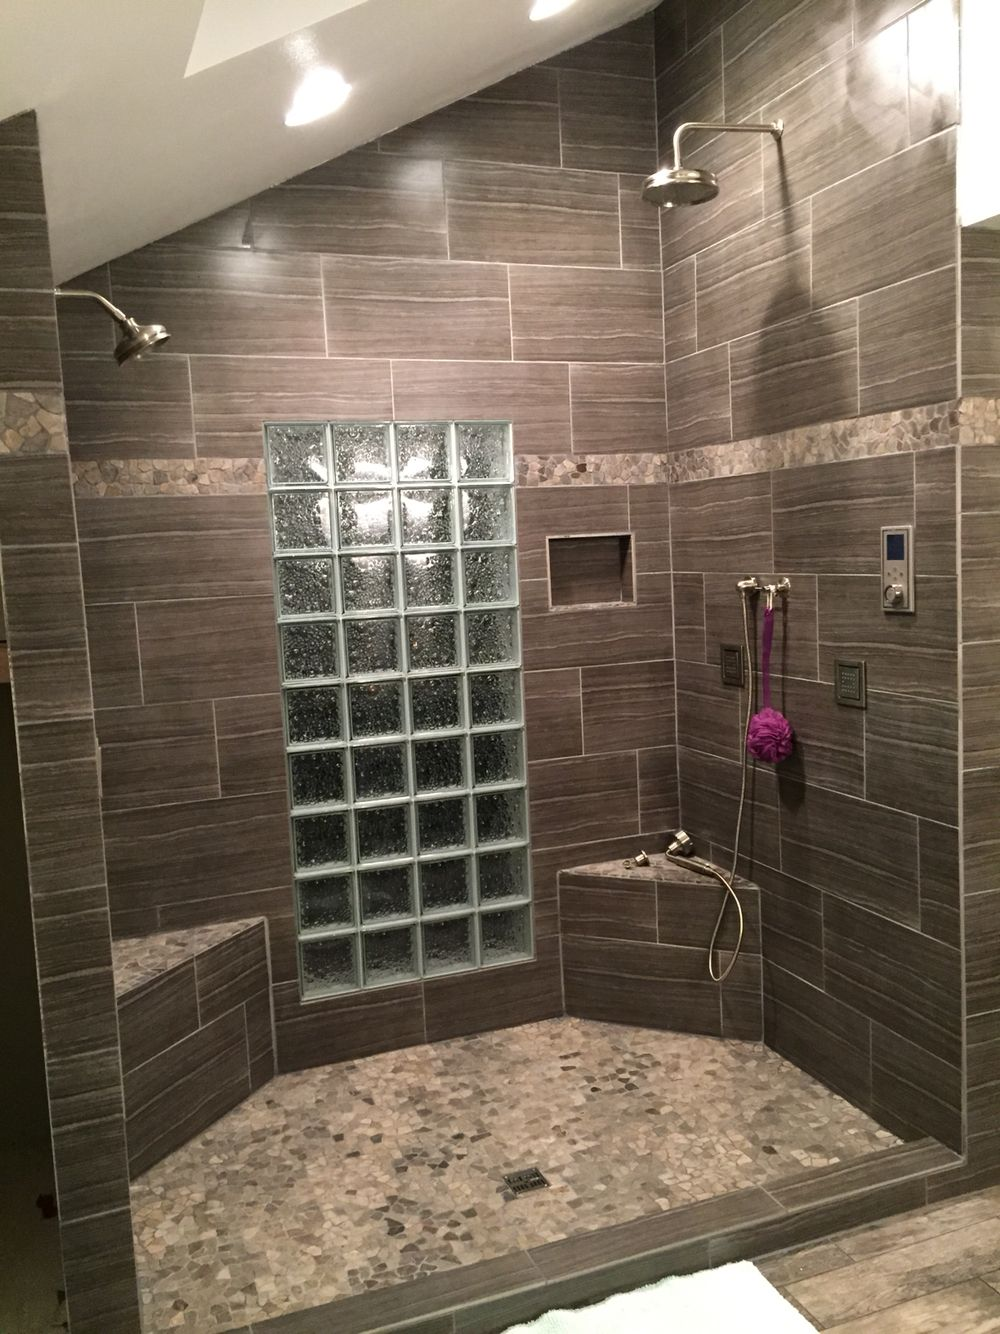 Double Shower Head And Four Body Sprays By The Plumbing